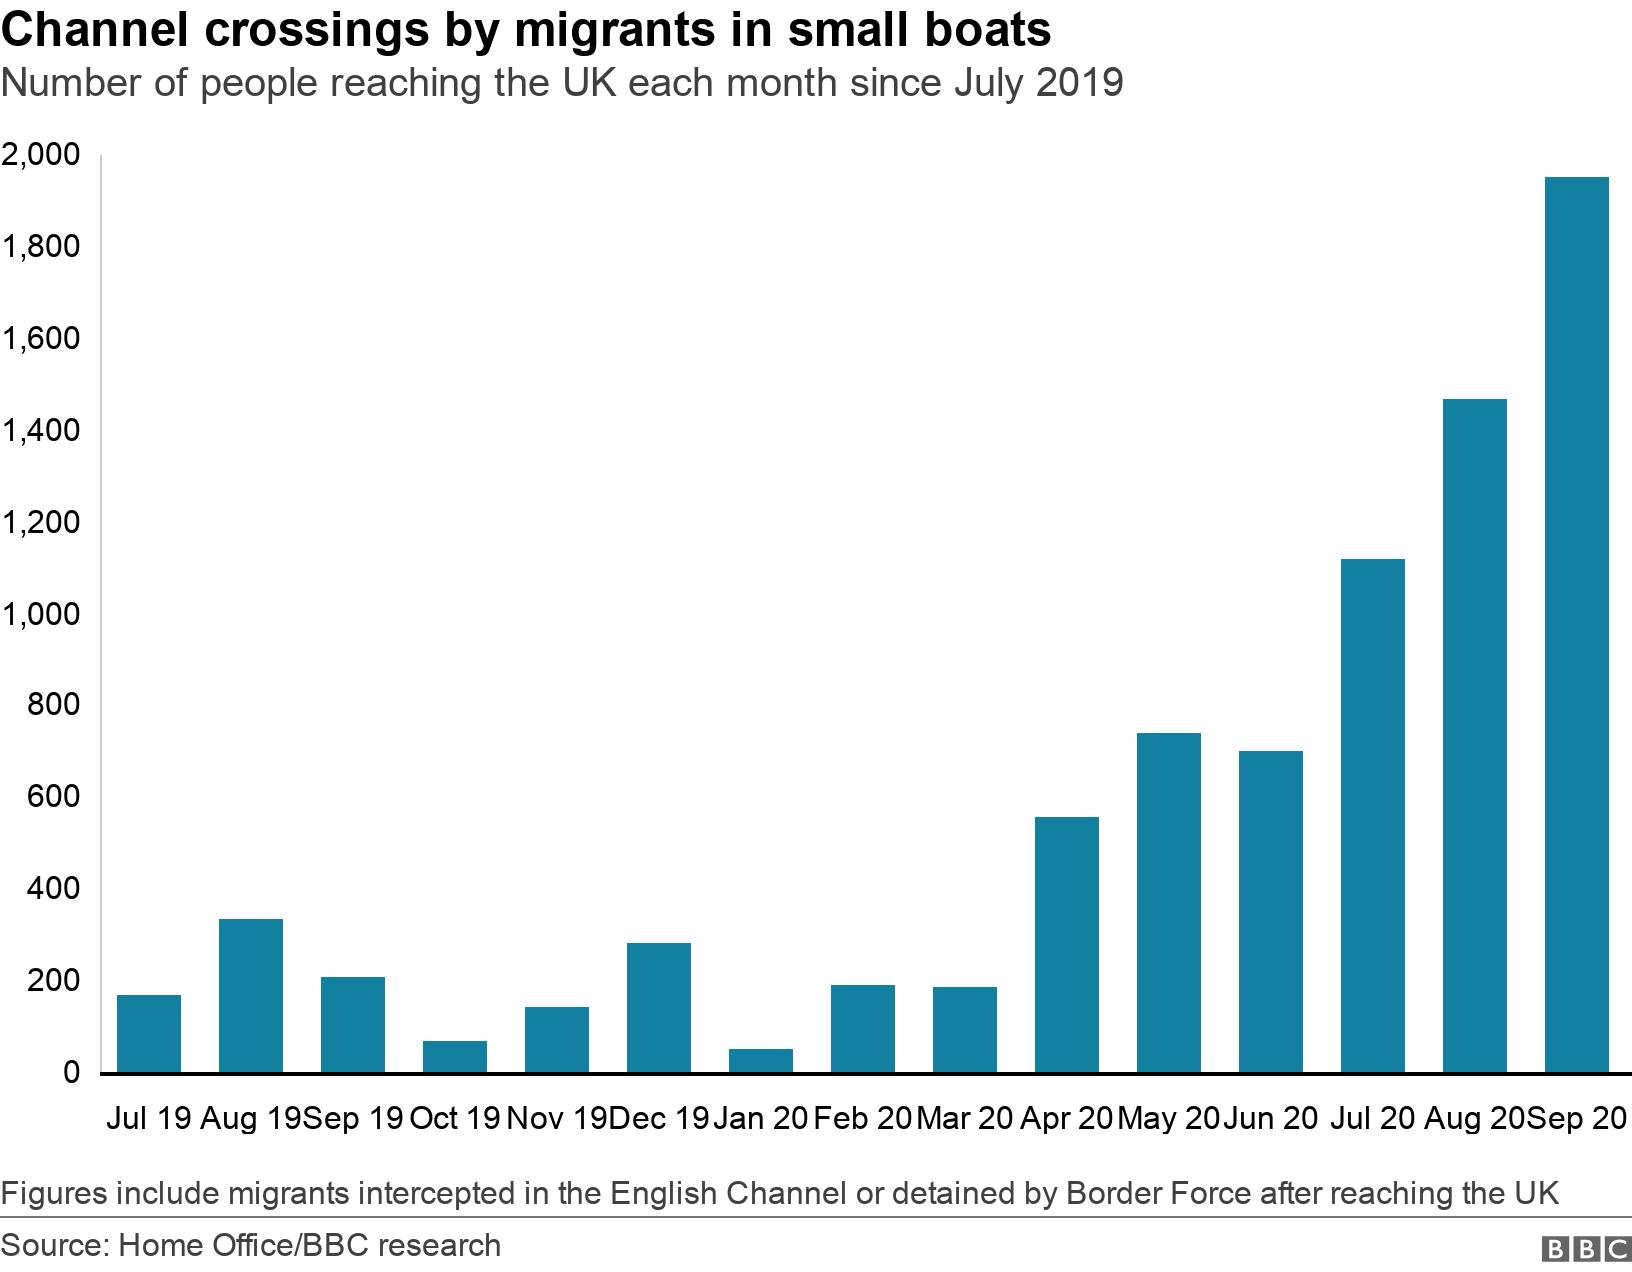 Channel crossings by migrants in small boats. Number of people reaching the UK each month since July 2019.  Figures include migrants  intercepted in the English Channel or detained by Border Force after reaching the UK.